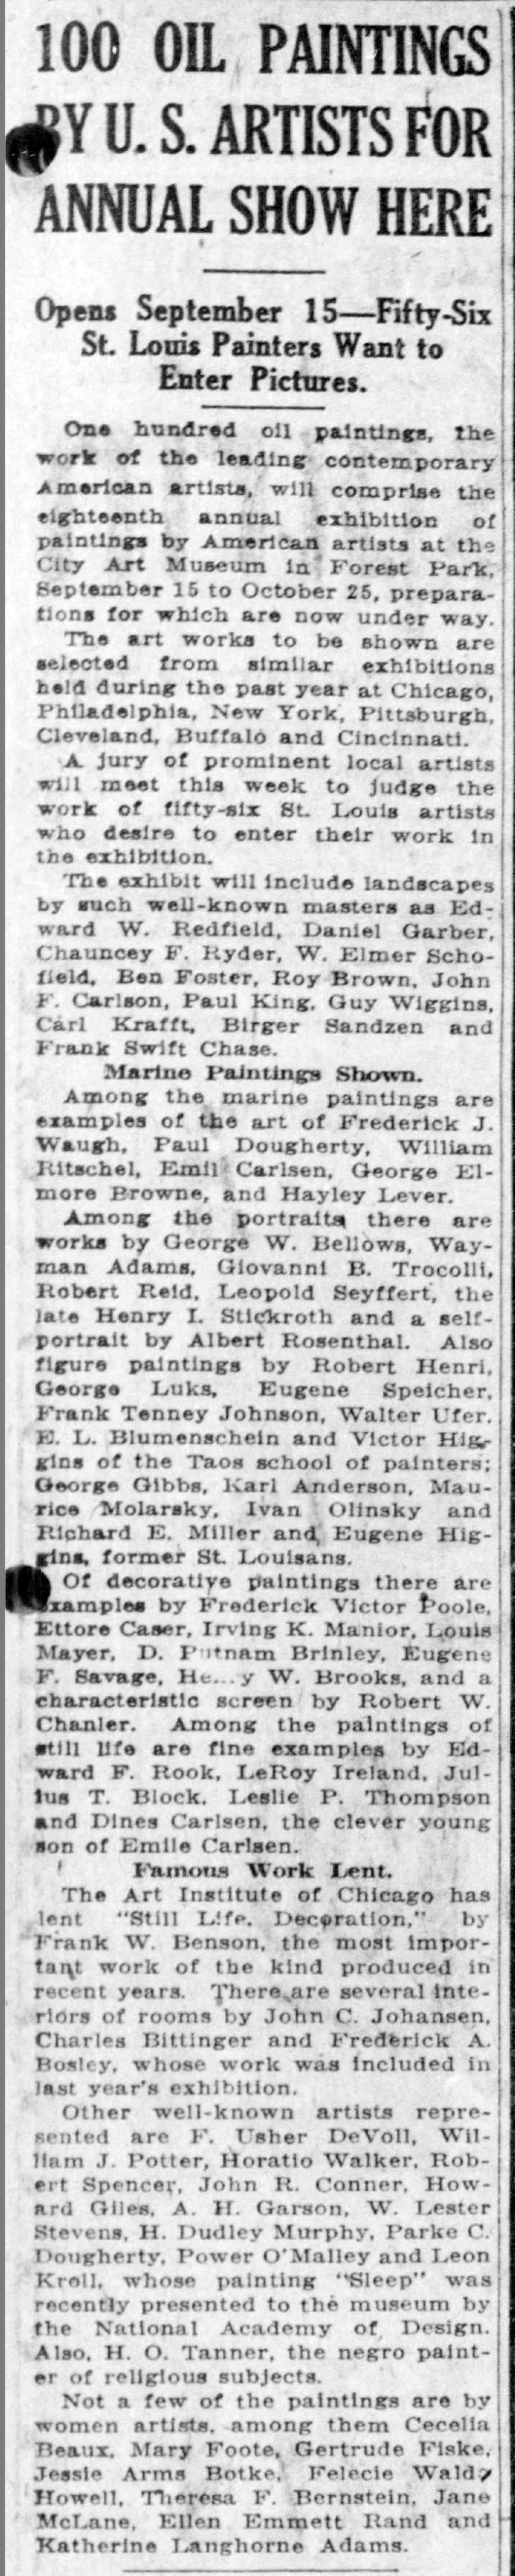 "The St. Louis Star and Times, St. Louis, MO, ""100 Oil Paintings by U.S. Artists for Annual Show Here"", Thursday, September 6, 1923, Main Edition, page 5, not illustrated"